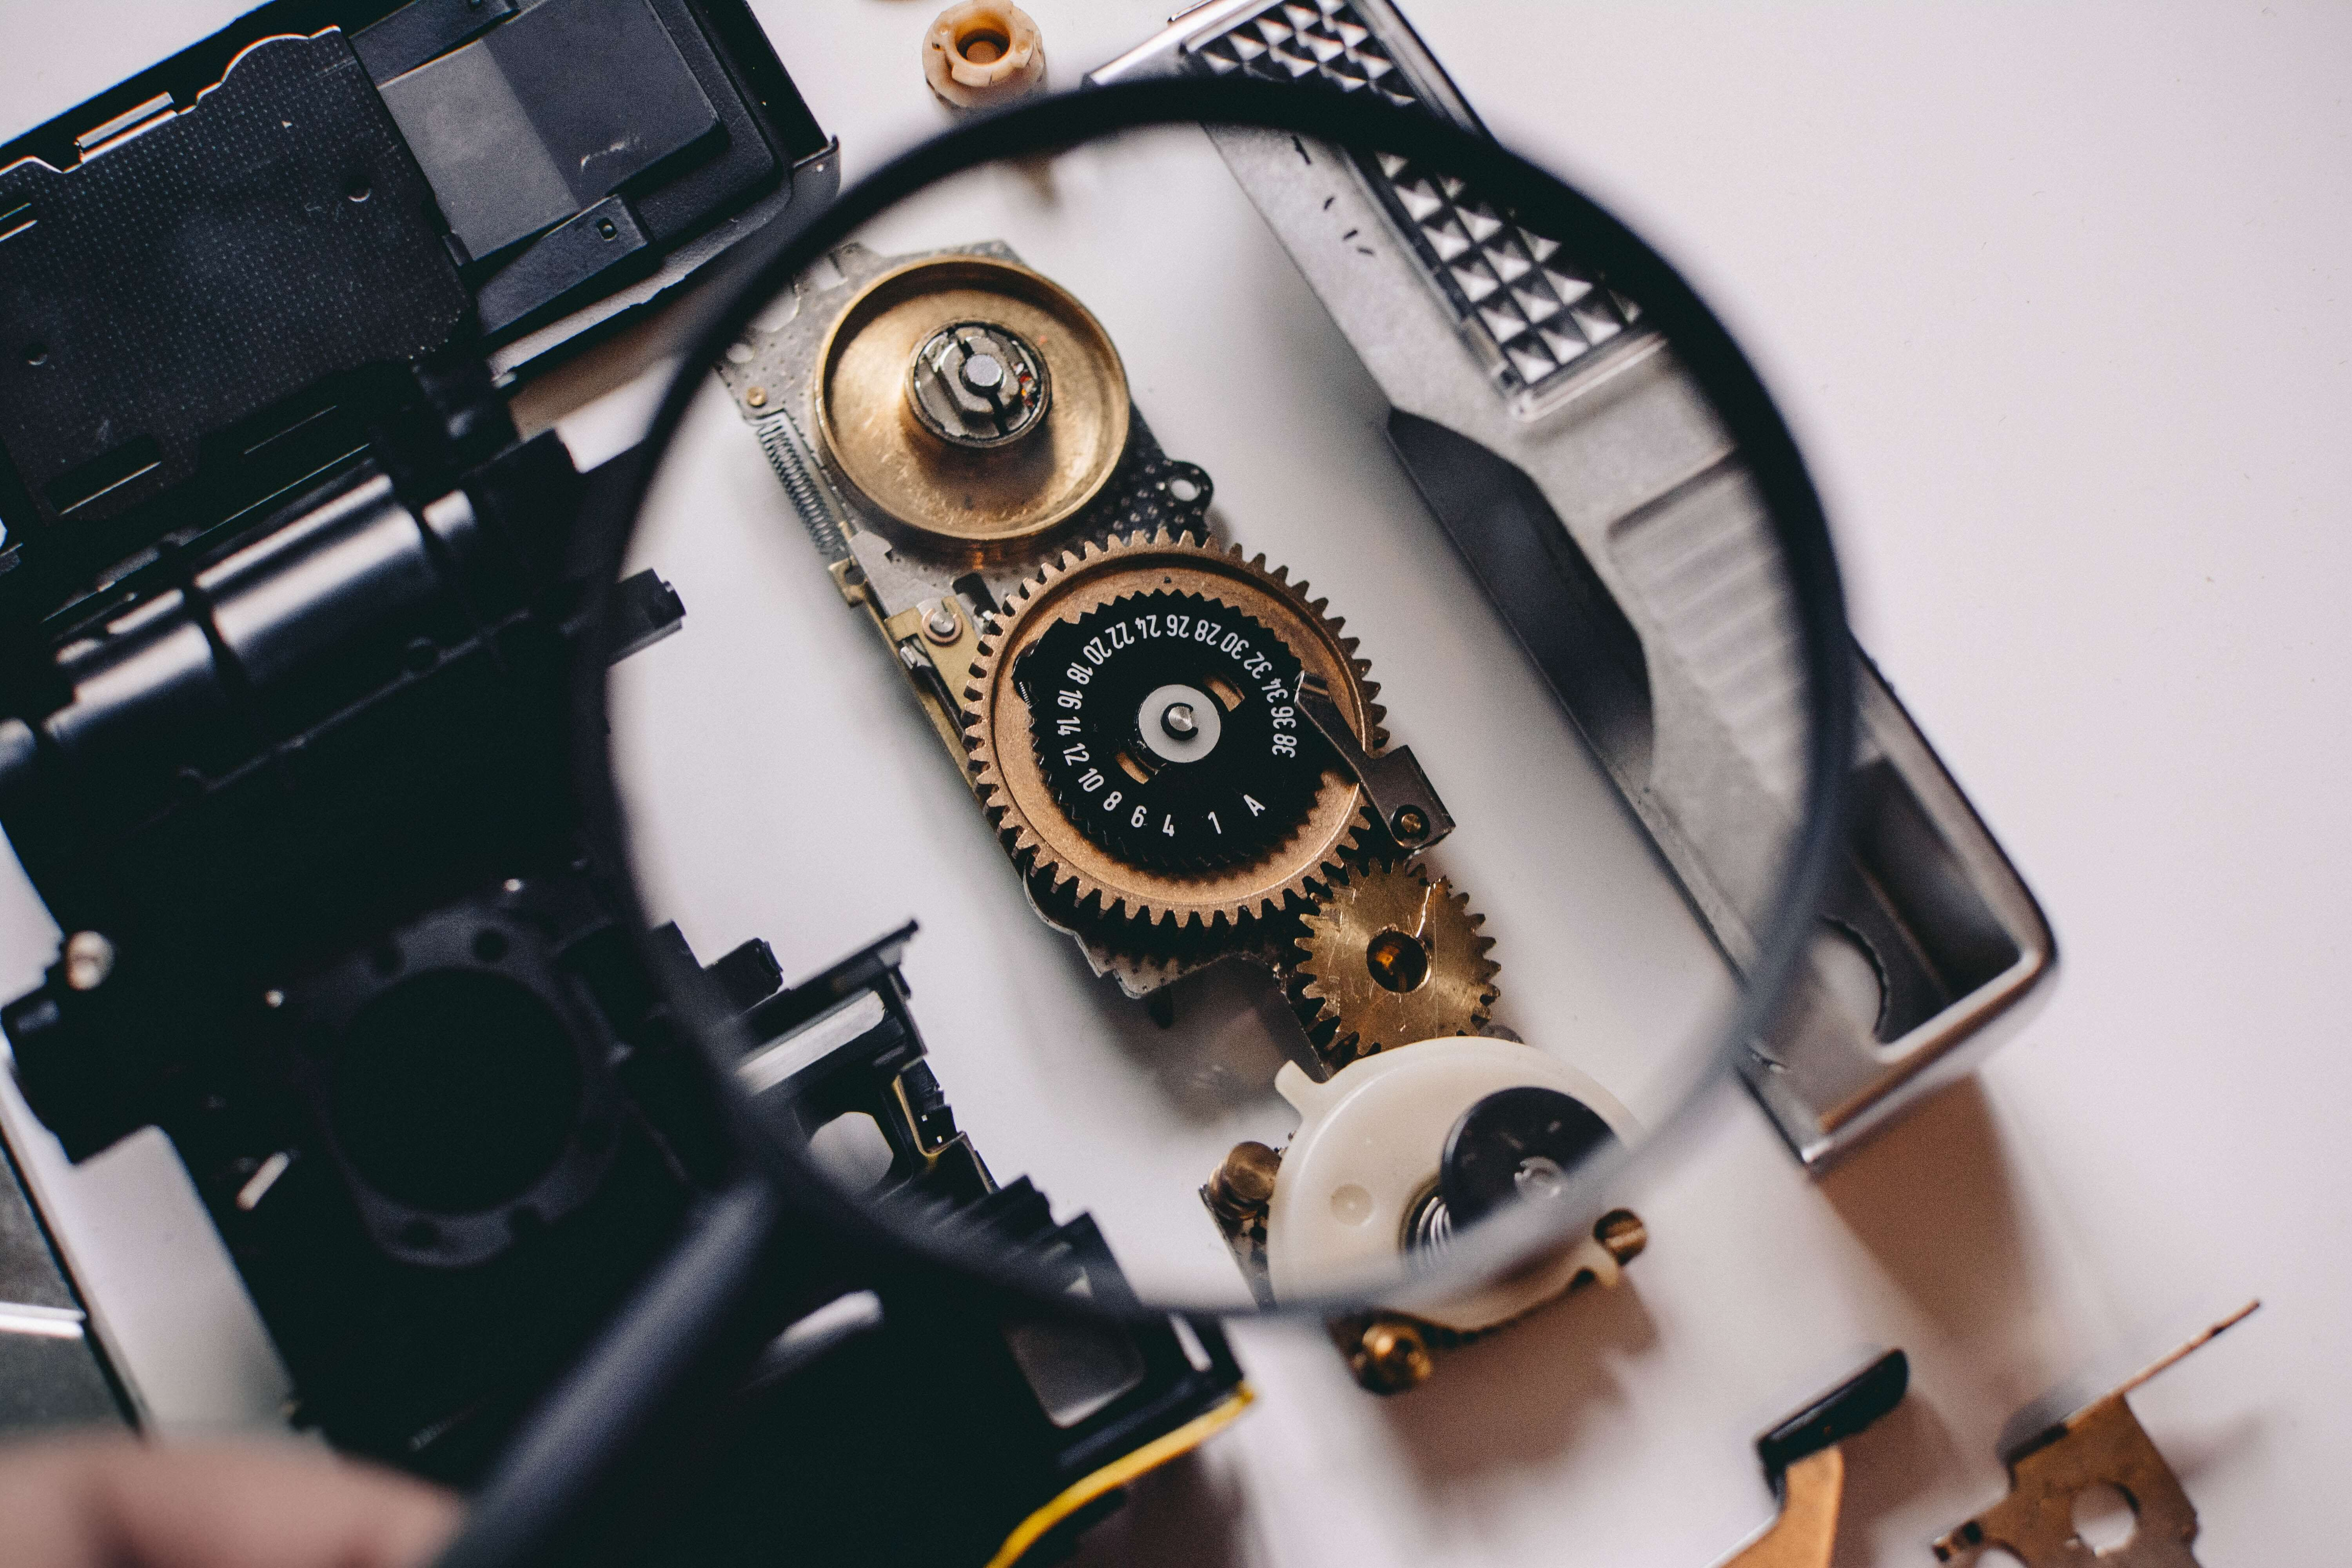 Magnifying glass inspecting the gears of a device